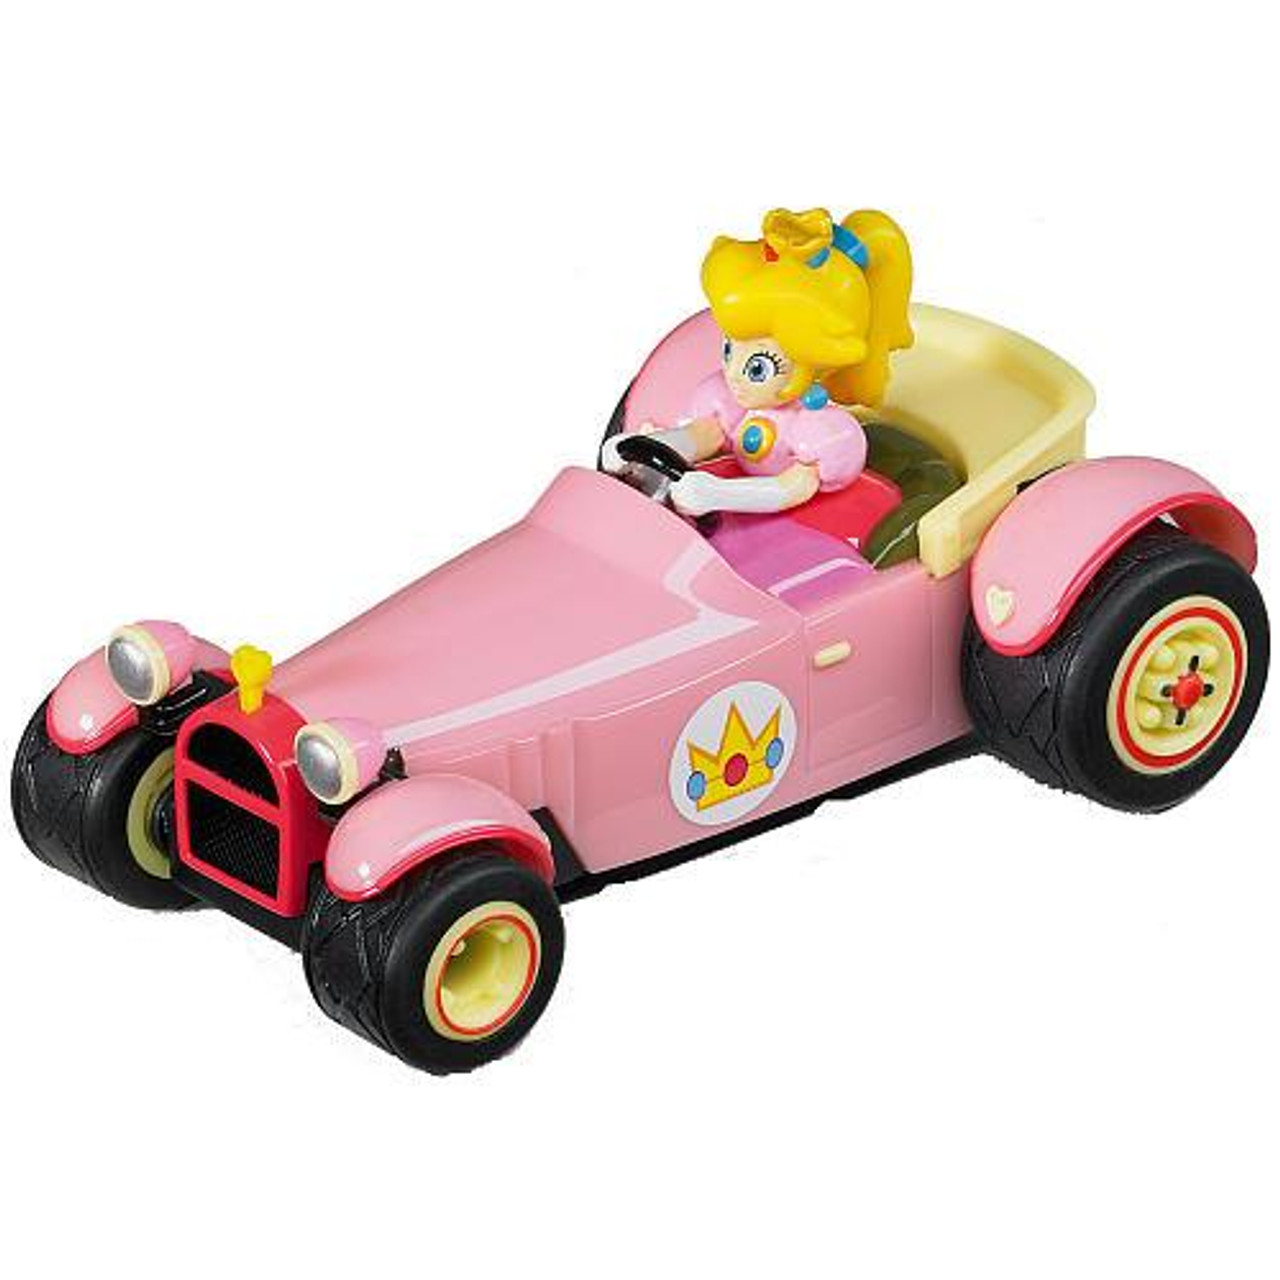 Super Mario Mario Kart DS Pull & Speed Peach Royale 3.5-Inch Vehicle #19303